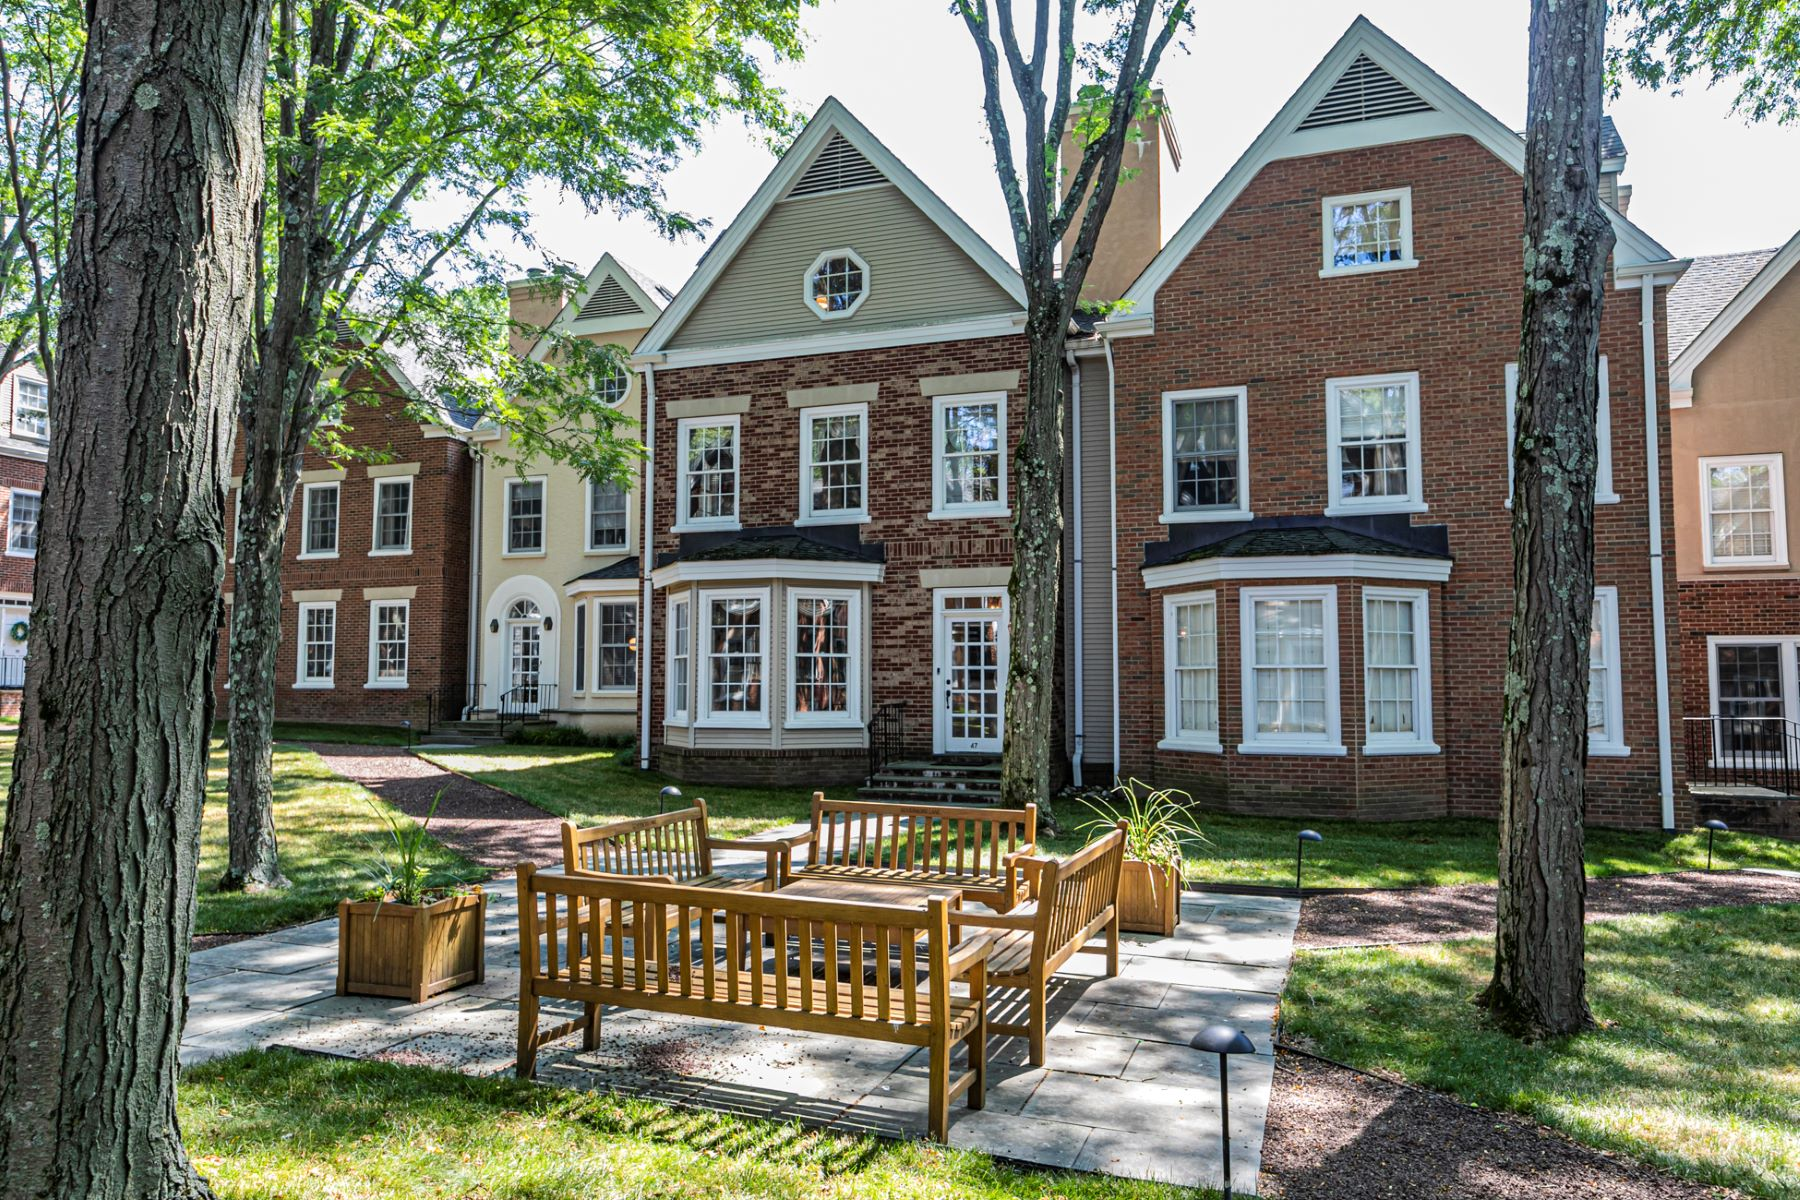 townhouses for Sale at The Pinnacle of Townhouse Living 47 Governors Lane, Princeton, New Jersey 08540 United States